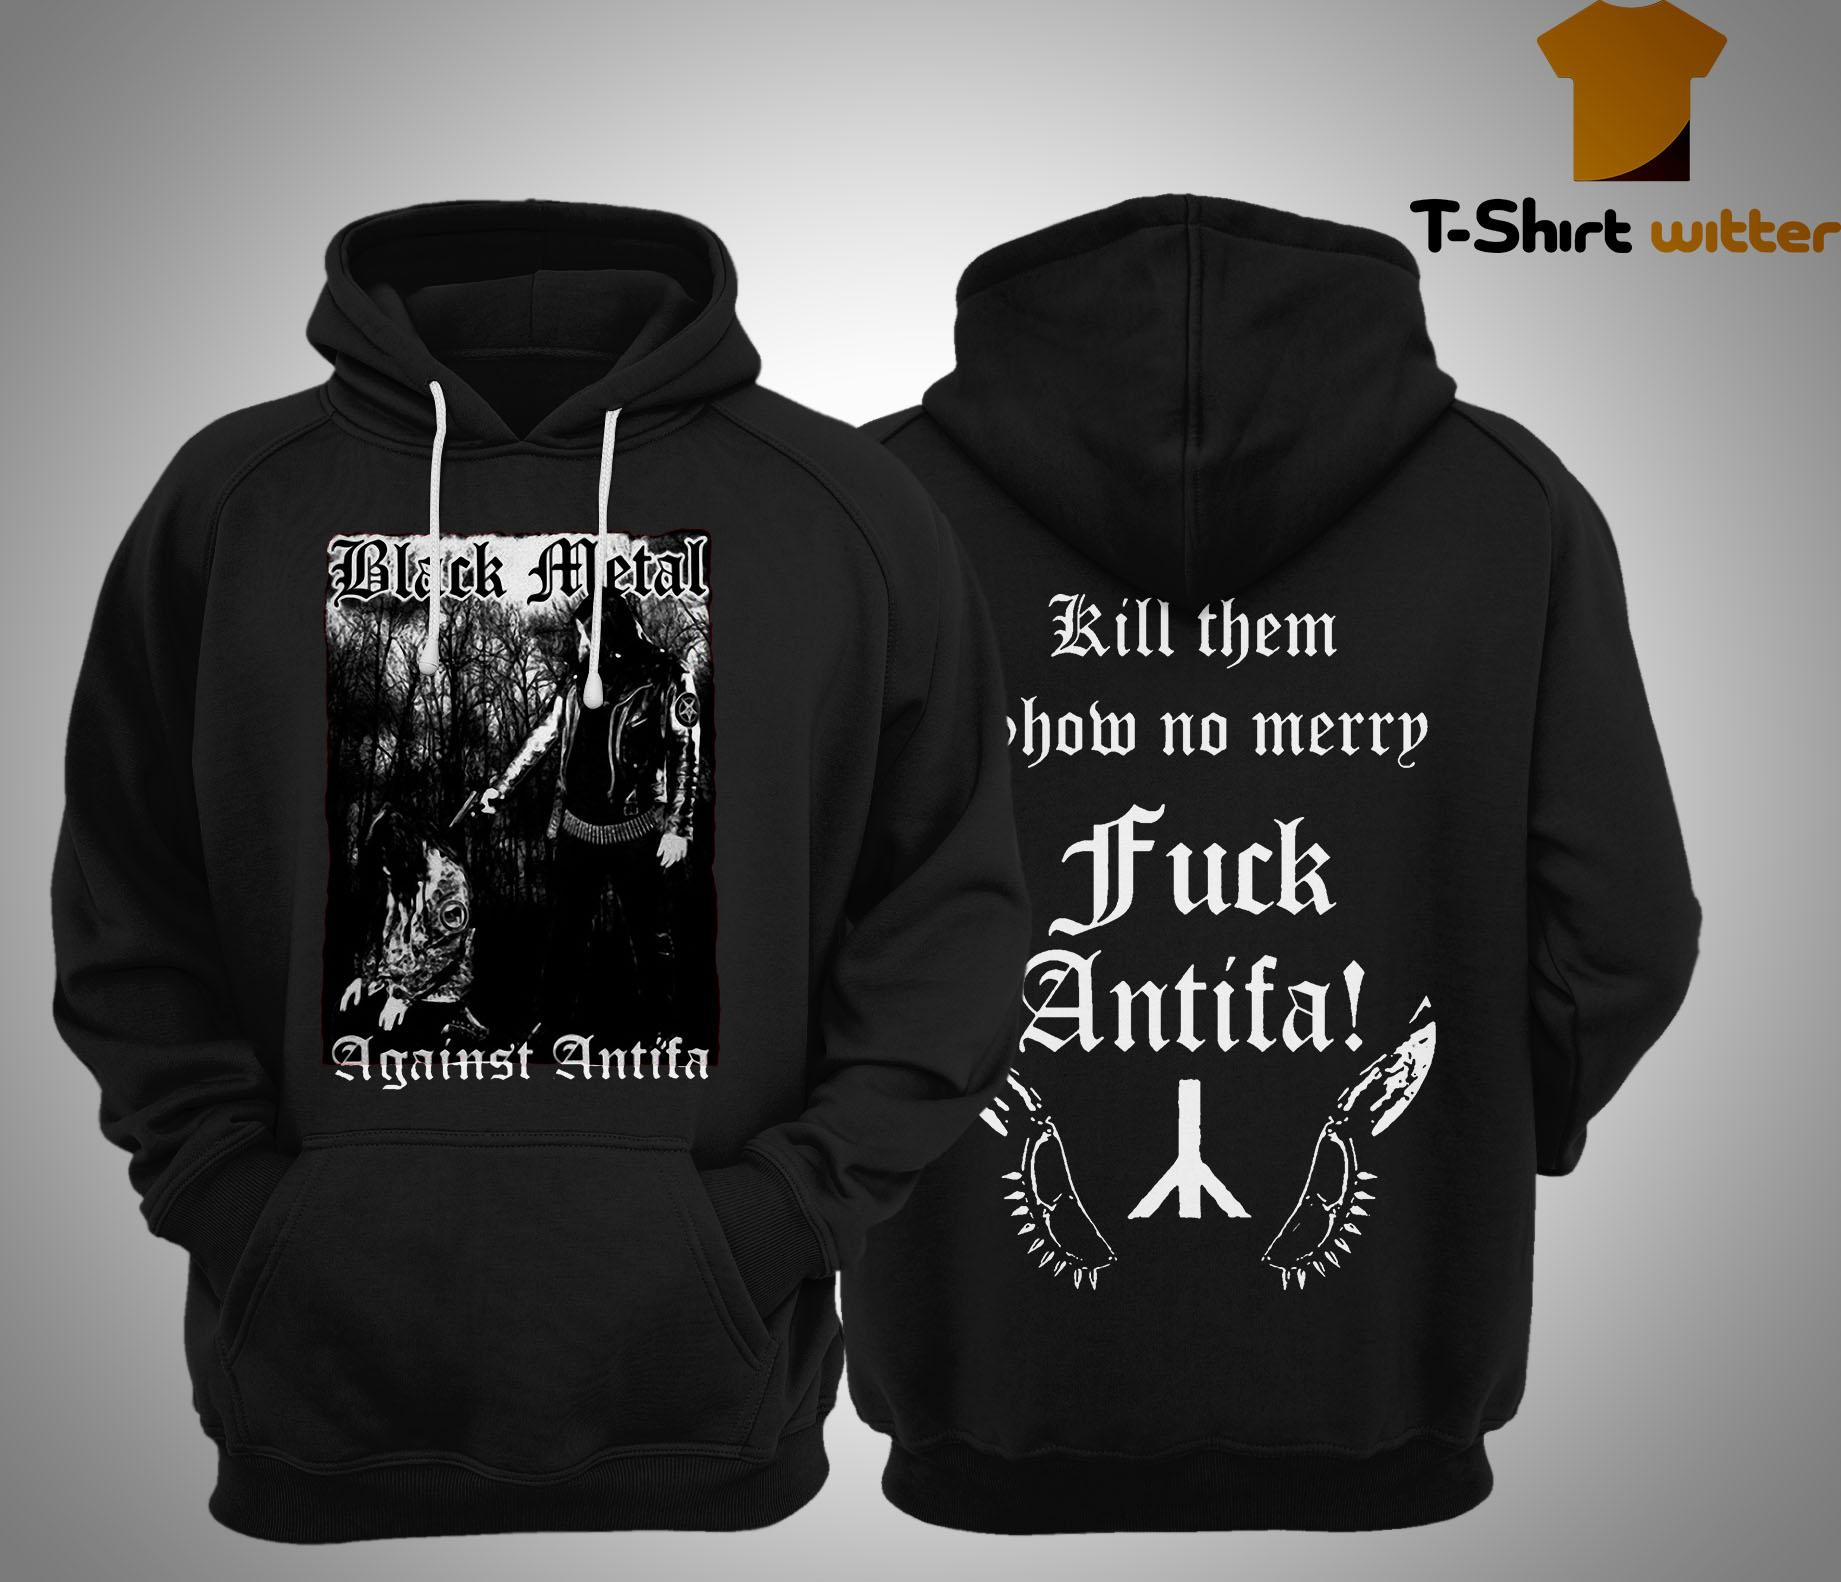 Behemoth Frontman Black Metal Against Antifa Hoodie